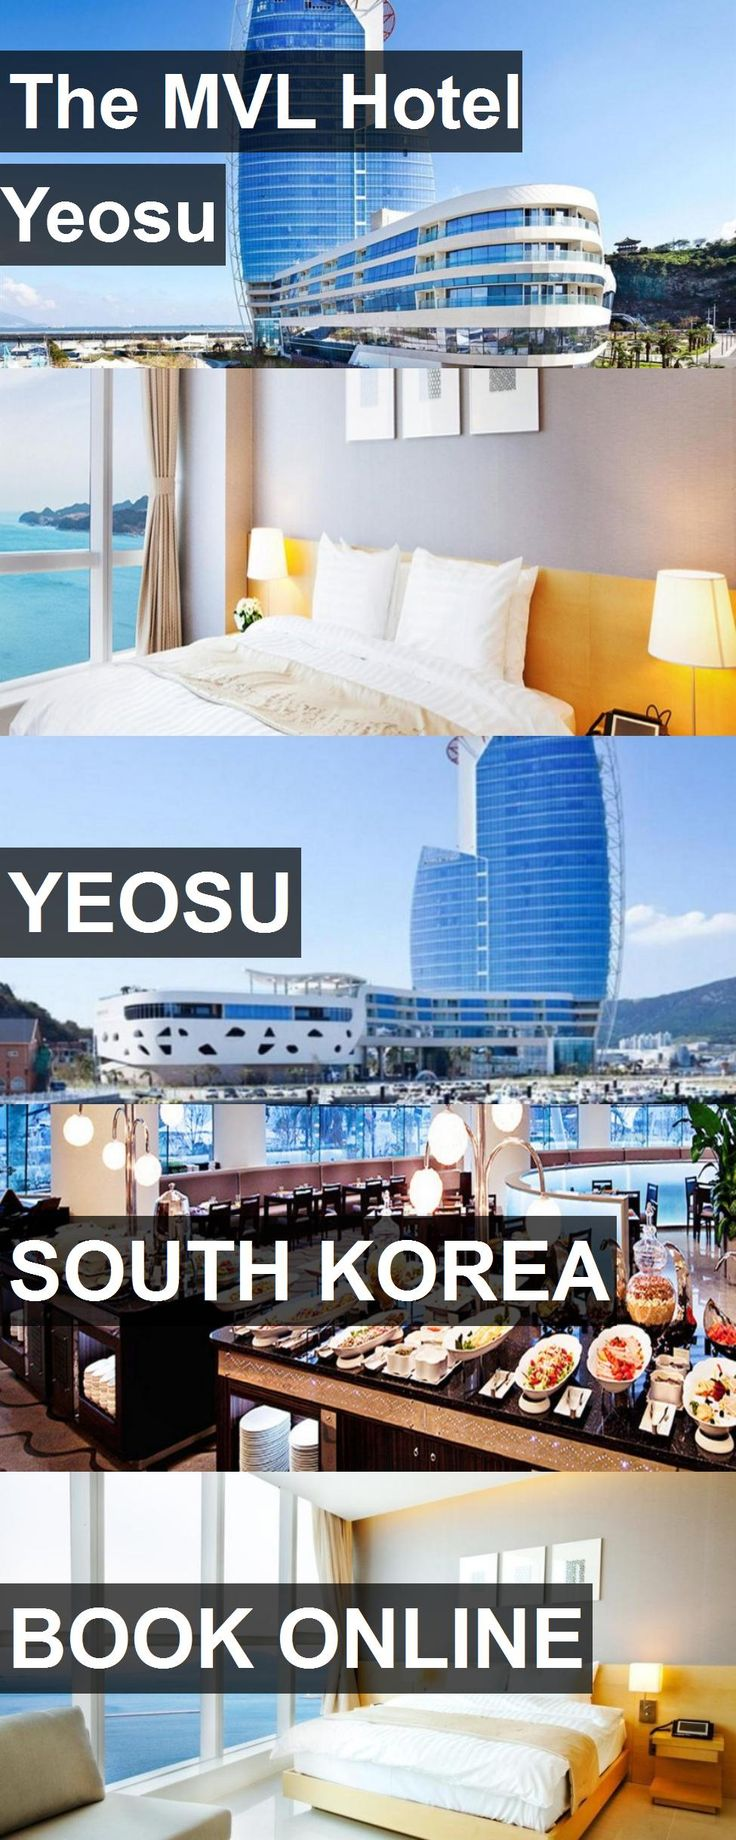 Hotel The MVL Hotel Yeosu in Yeosu, South Korea. For more information, photos, reviews and best prices please follow the link. #SouthKorea #Yeosu #TheMVLHotelYeosu #hotel #travel #vacation